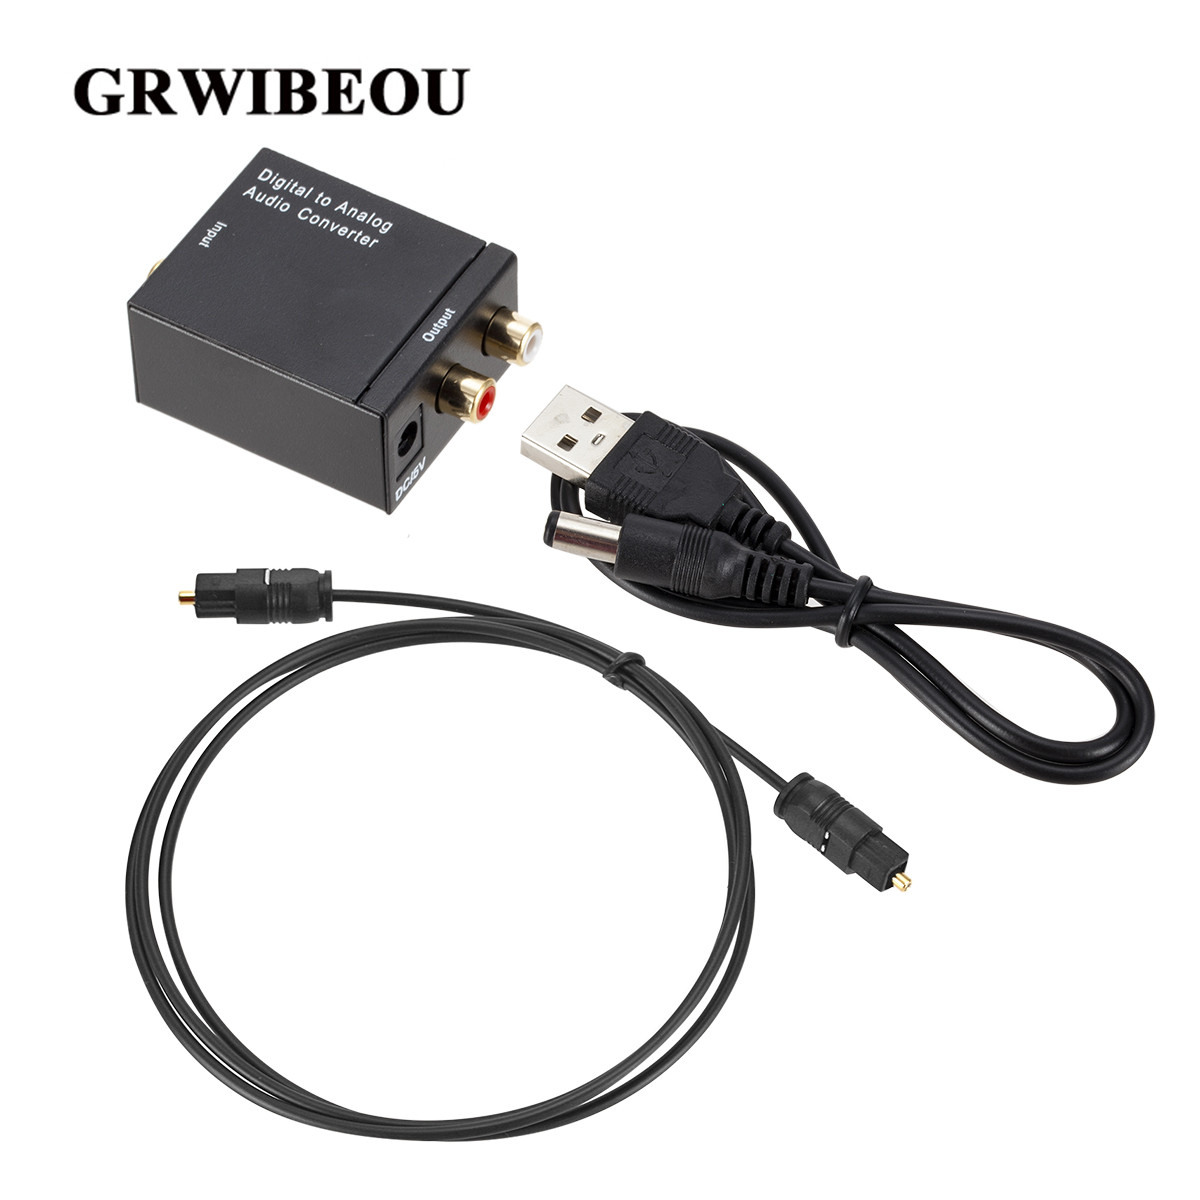 Grwibeou Digital-Analog-Audio-Wandler Glasfaser-toslink-Koaxialsignal - Tragbares Audio und Video